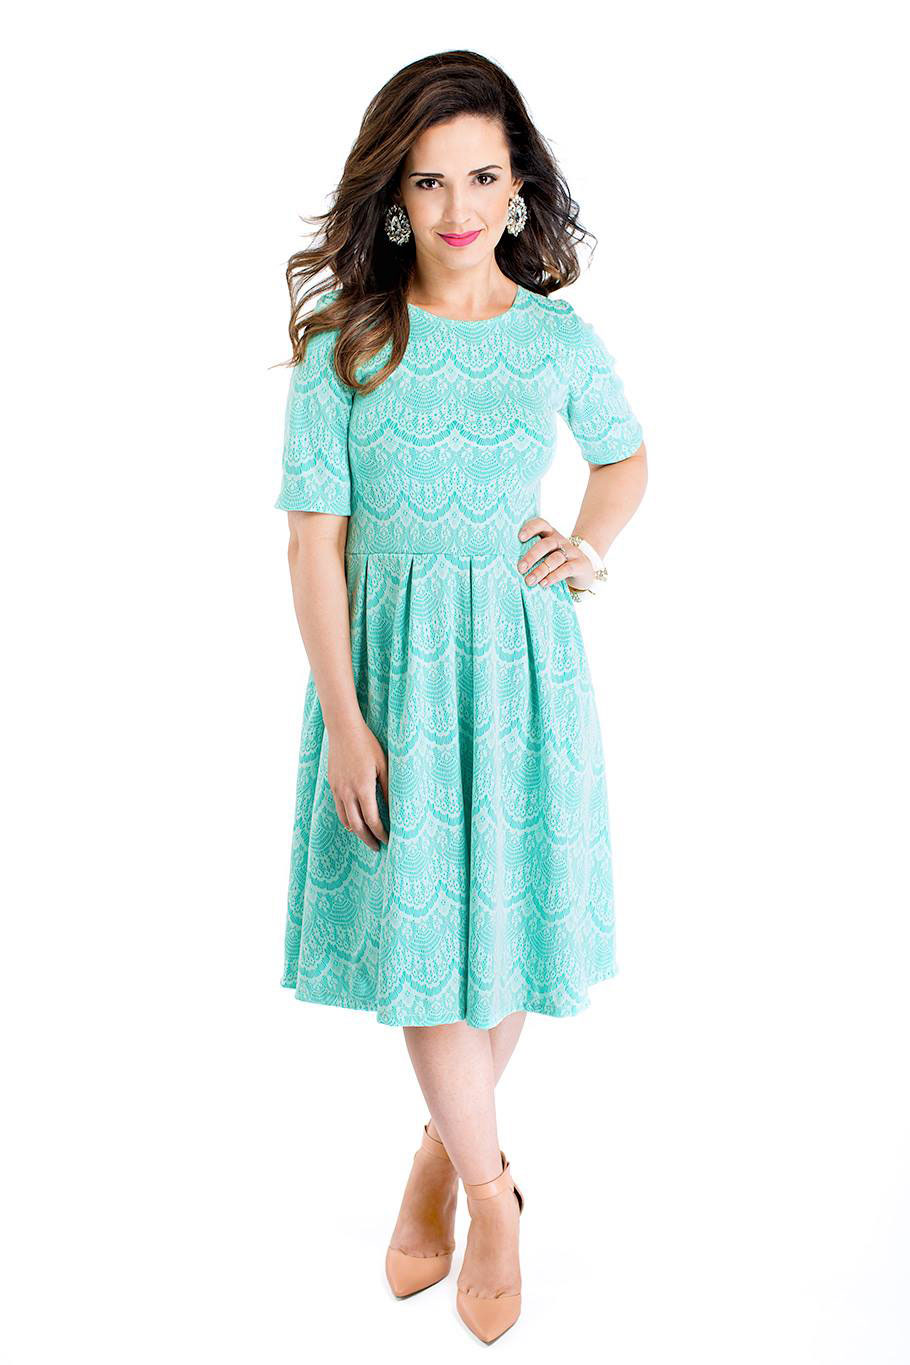 Shopping > modest church dresses for juniors, Up to 5% OFF